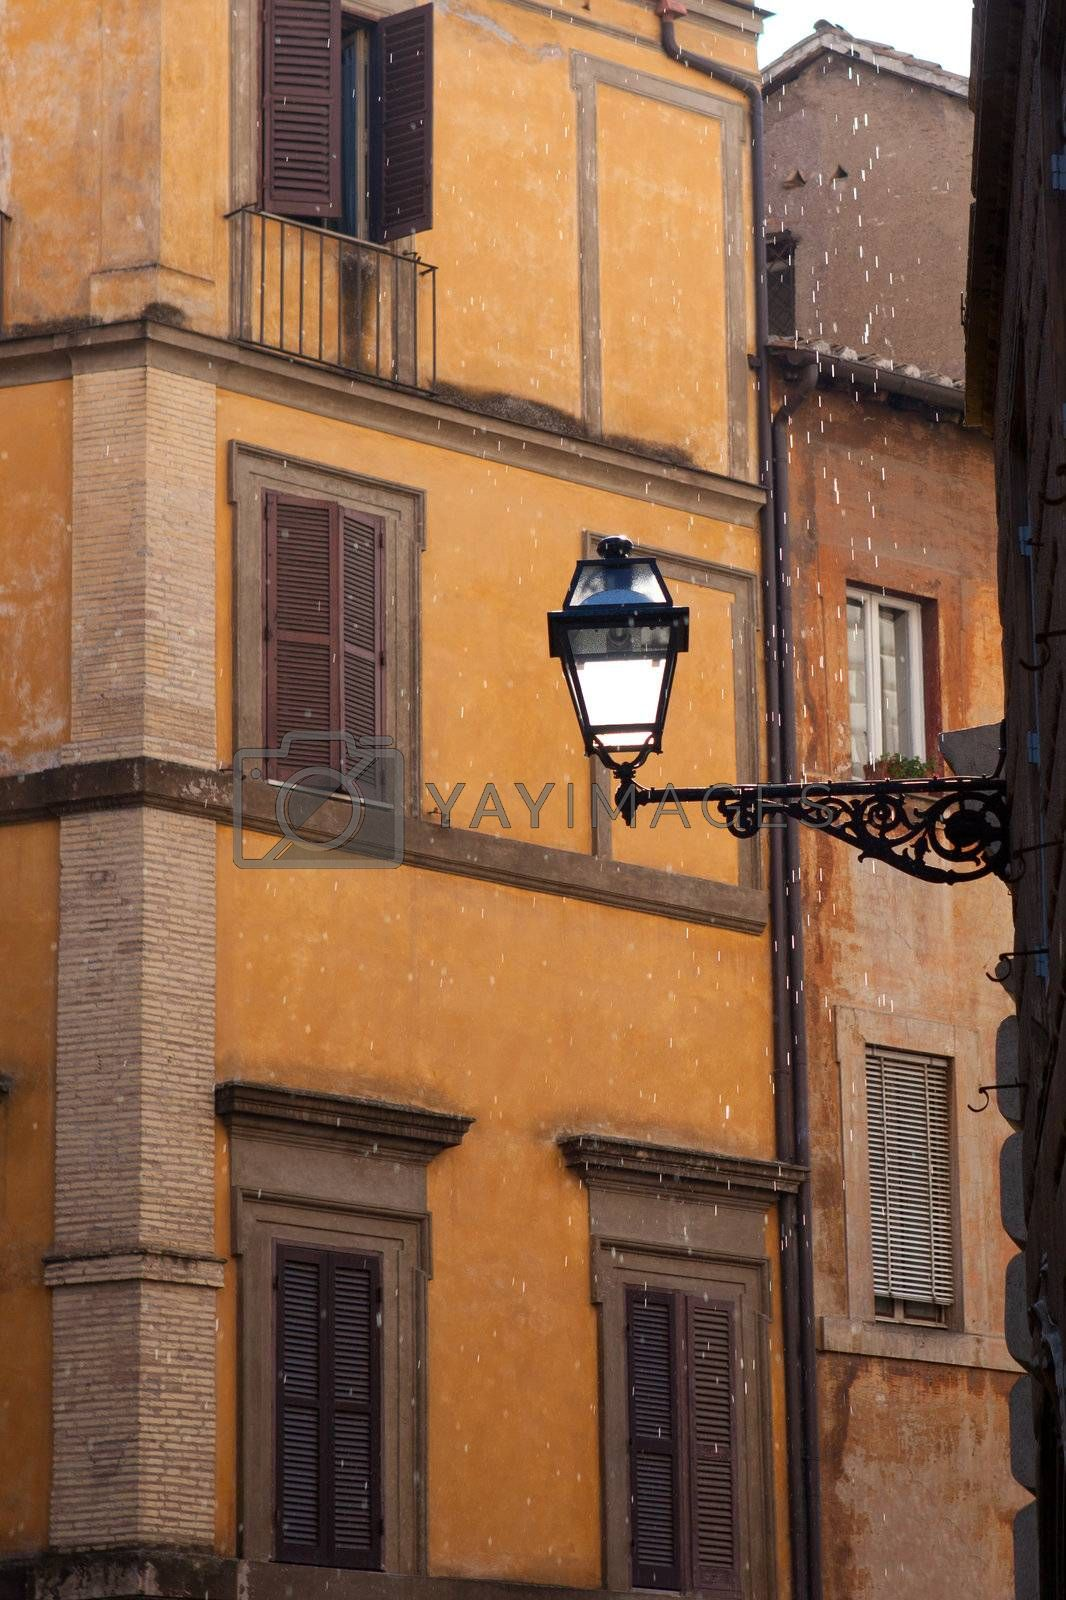 Picturesque facades of old medieval multistory urban residential stone brick-red houses with street lamp and icon on wall in city Rome Italy